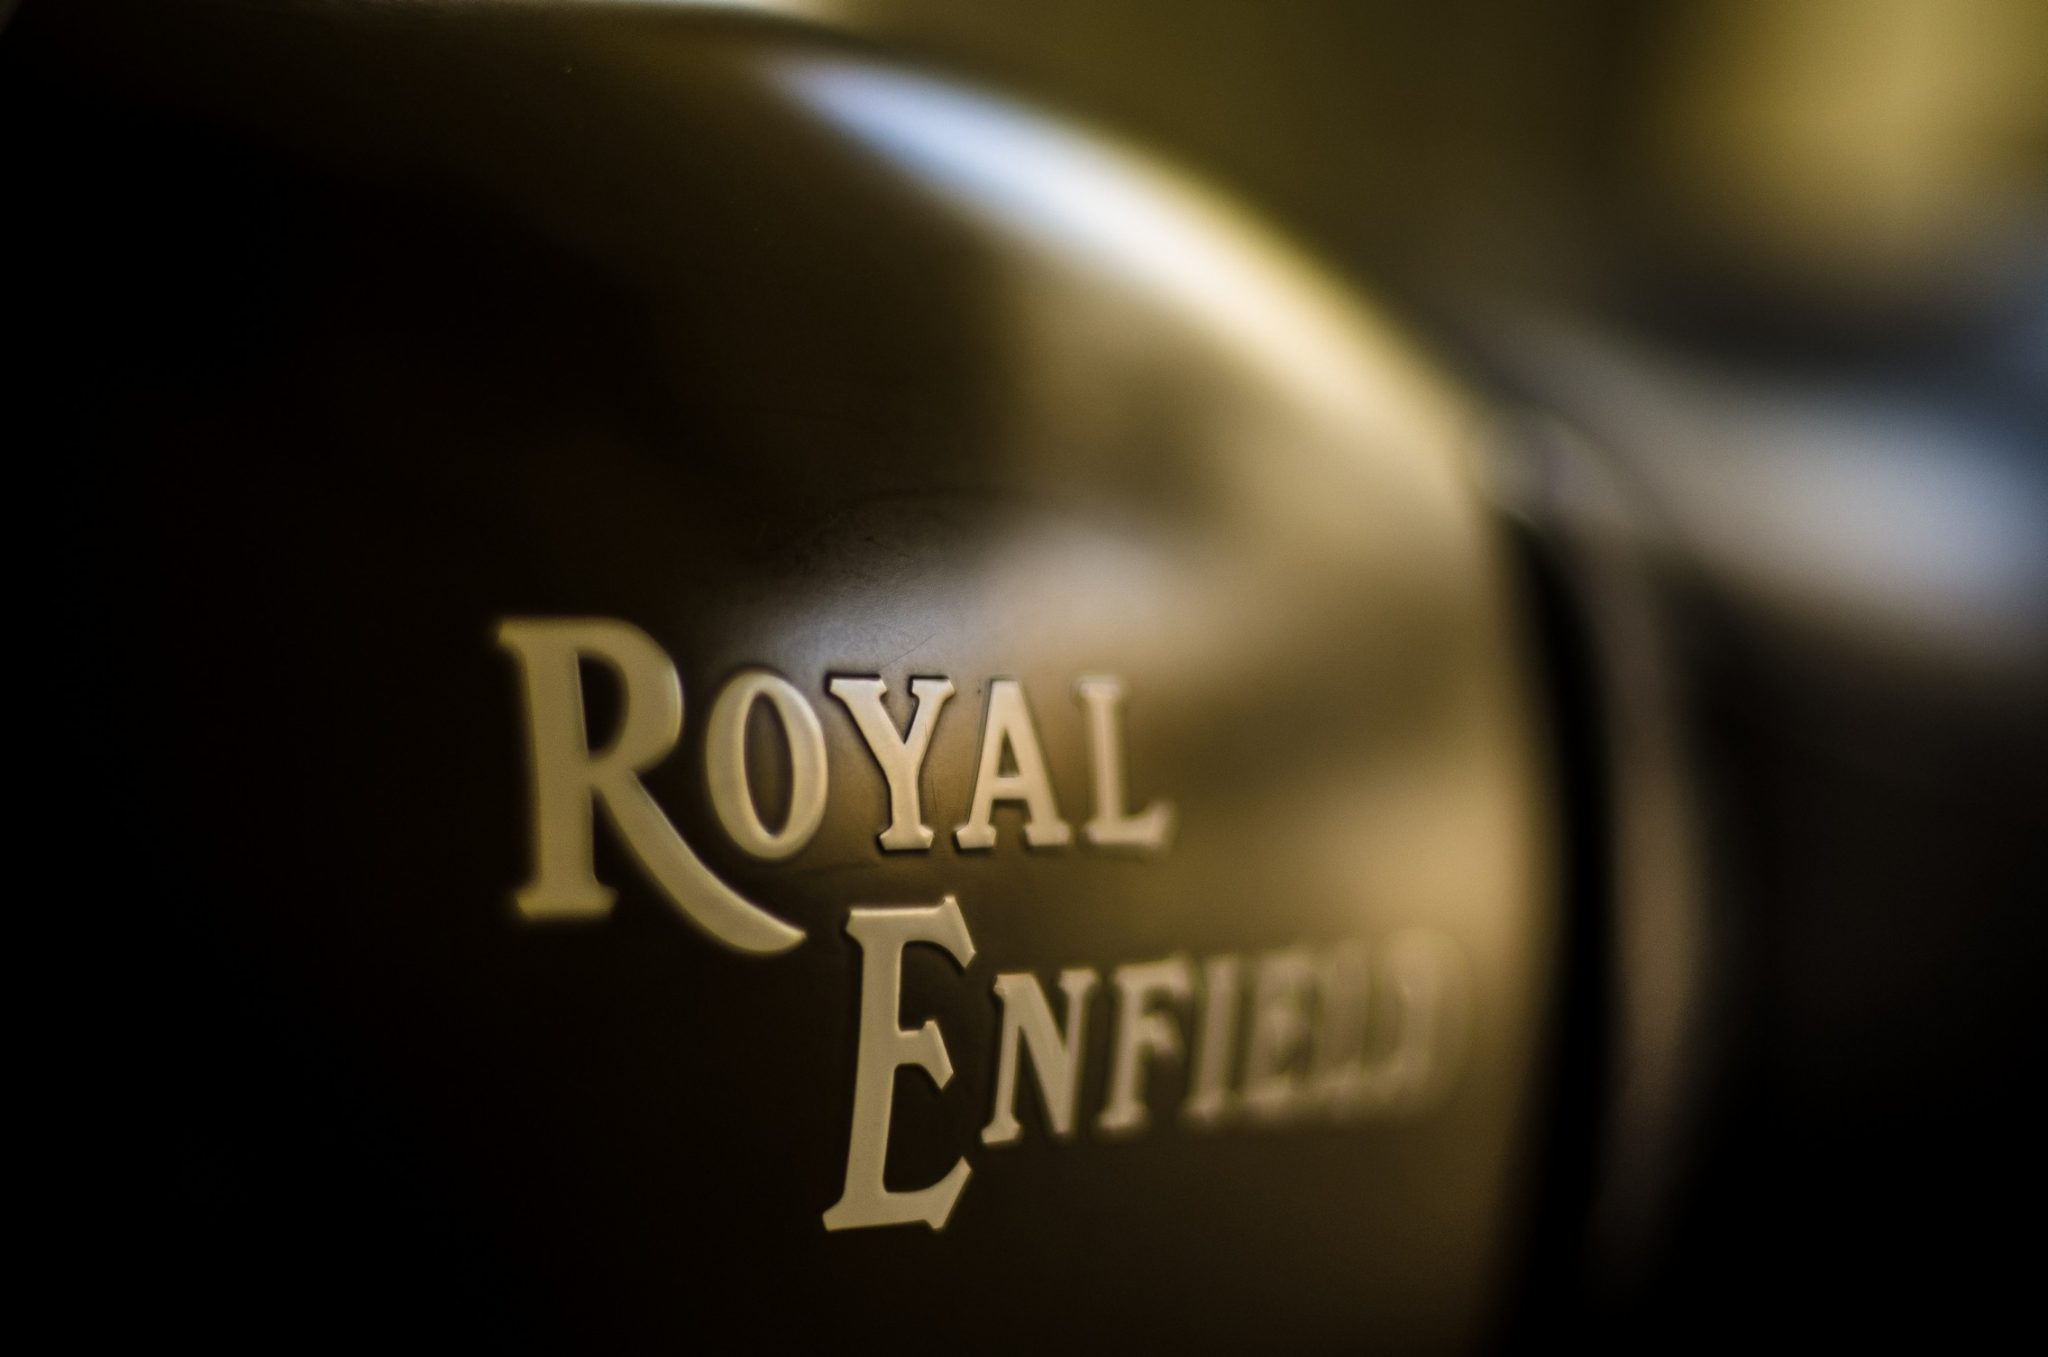 Royal Enfield to go cleaner and electric